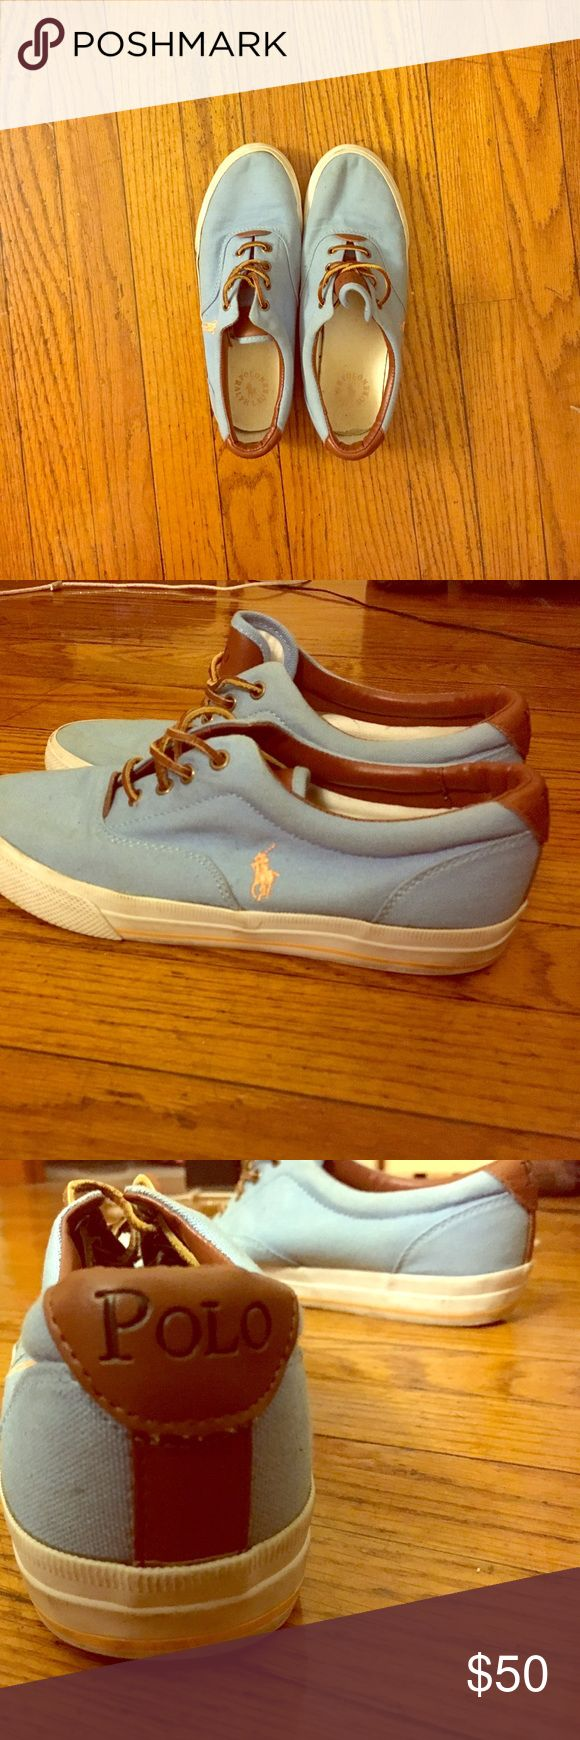 Ralph Lauren Polo Shoes Great condition Authentic polo shoes, comfortable pair to wear casually or to dress up with. Beautiful baby blue color! Great deal Ralph Lauren Shoes Flats & Loafers